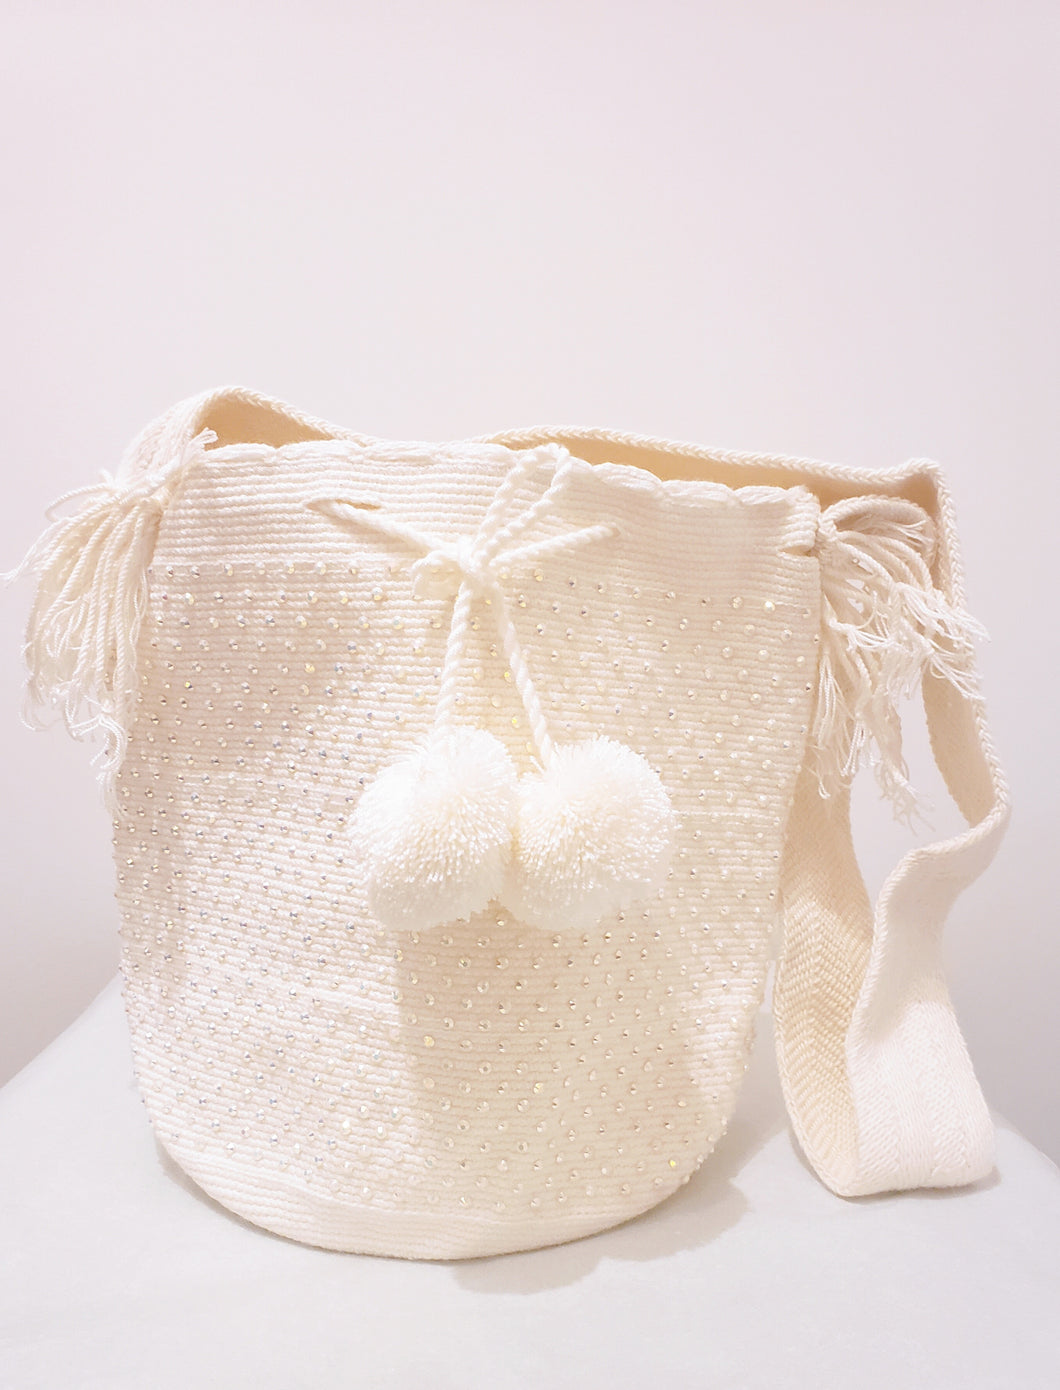 White Pompom Handmade Wayuu Mochila Bag with Crystals - Wuitusu